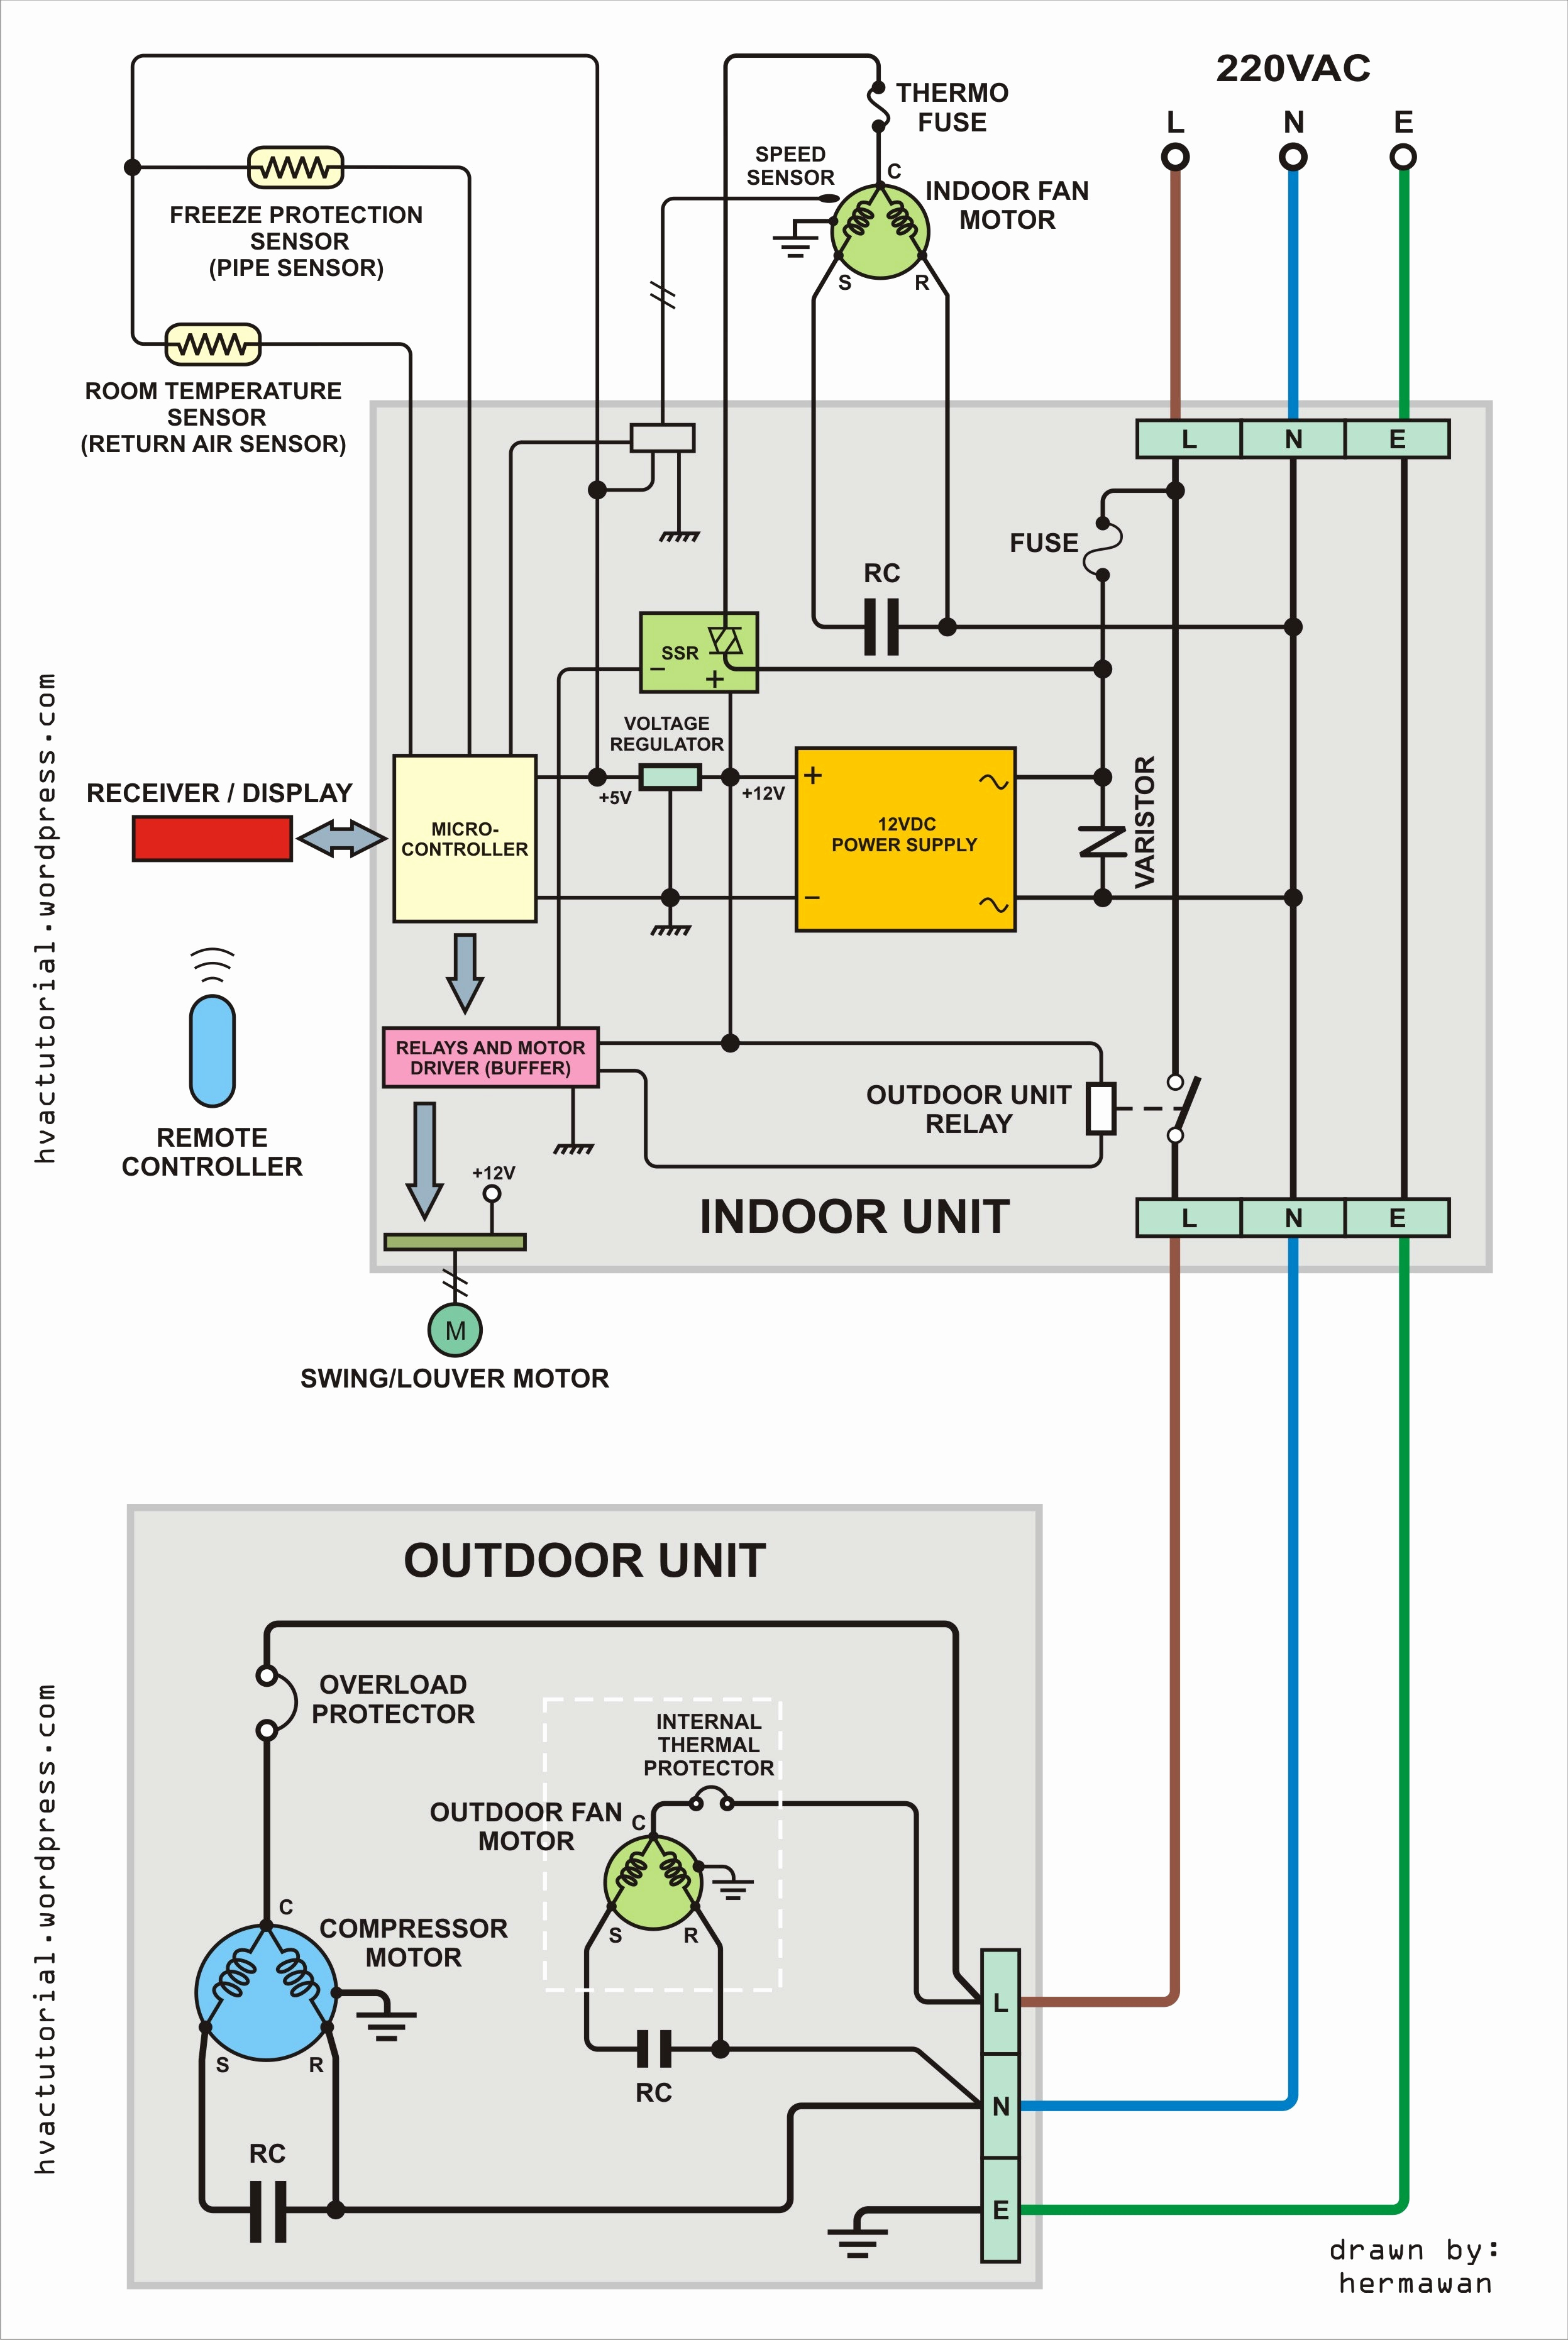 icp wiring diagram wiring diagrams clicks Comfortmaker Heat Pump Wiring Diagram icp wiring diagram wiring diagram all data icp air handler wiring diagram icp heat pump